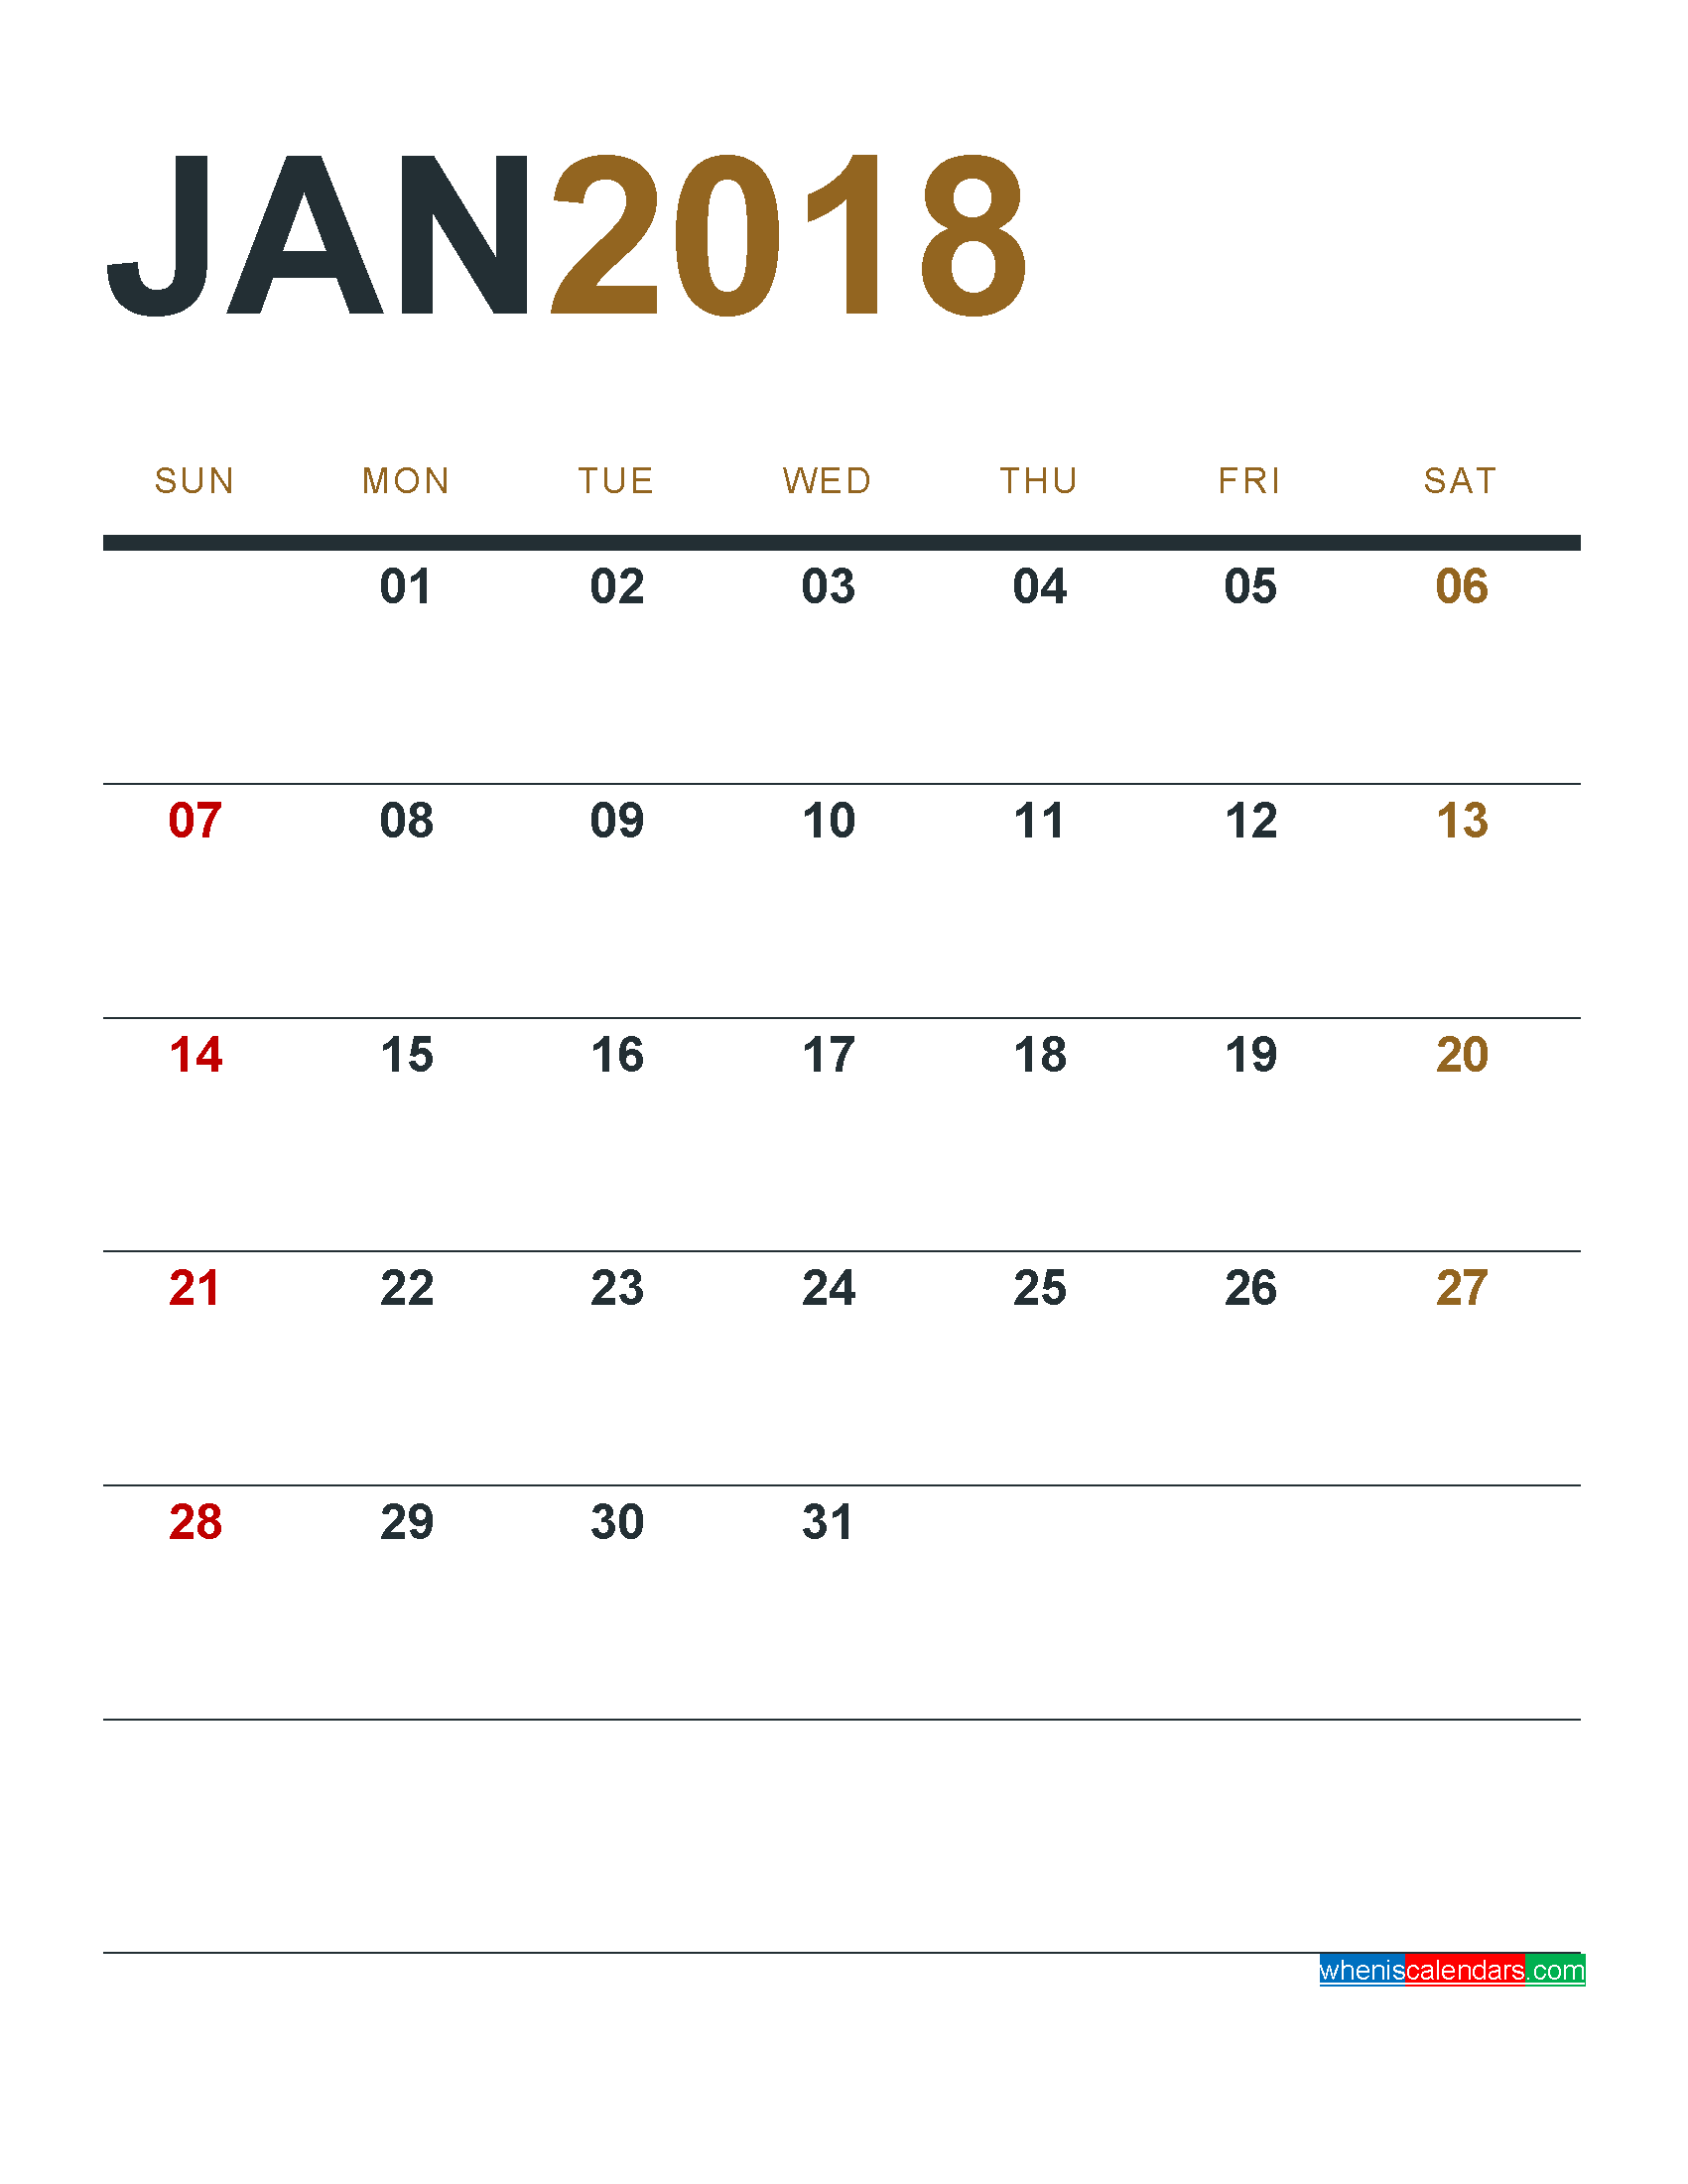 January 2018 Calendar Printable as PDF and Image 1 Month 1 Page